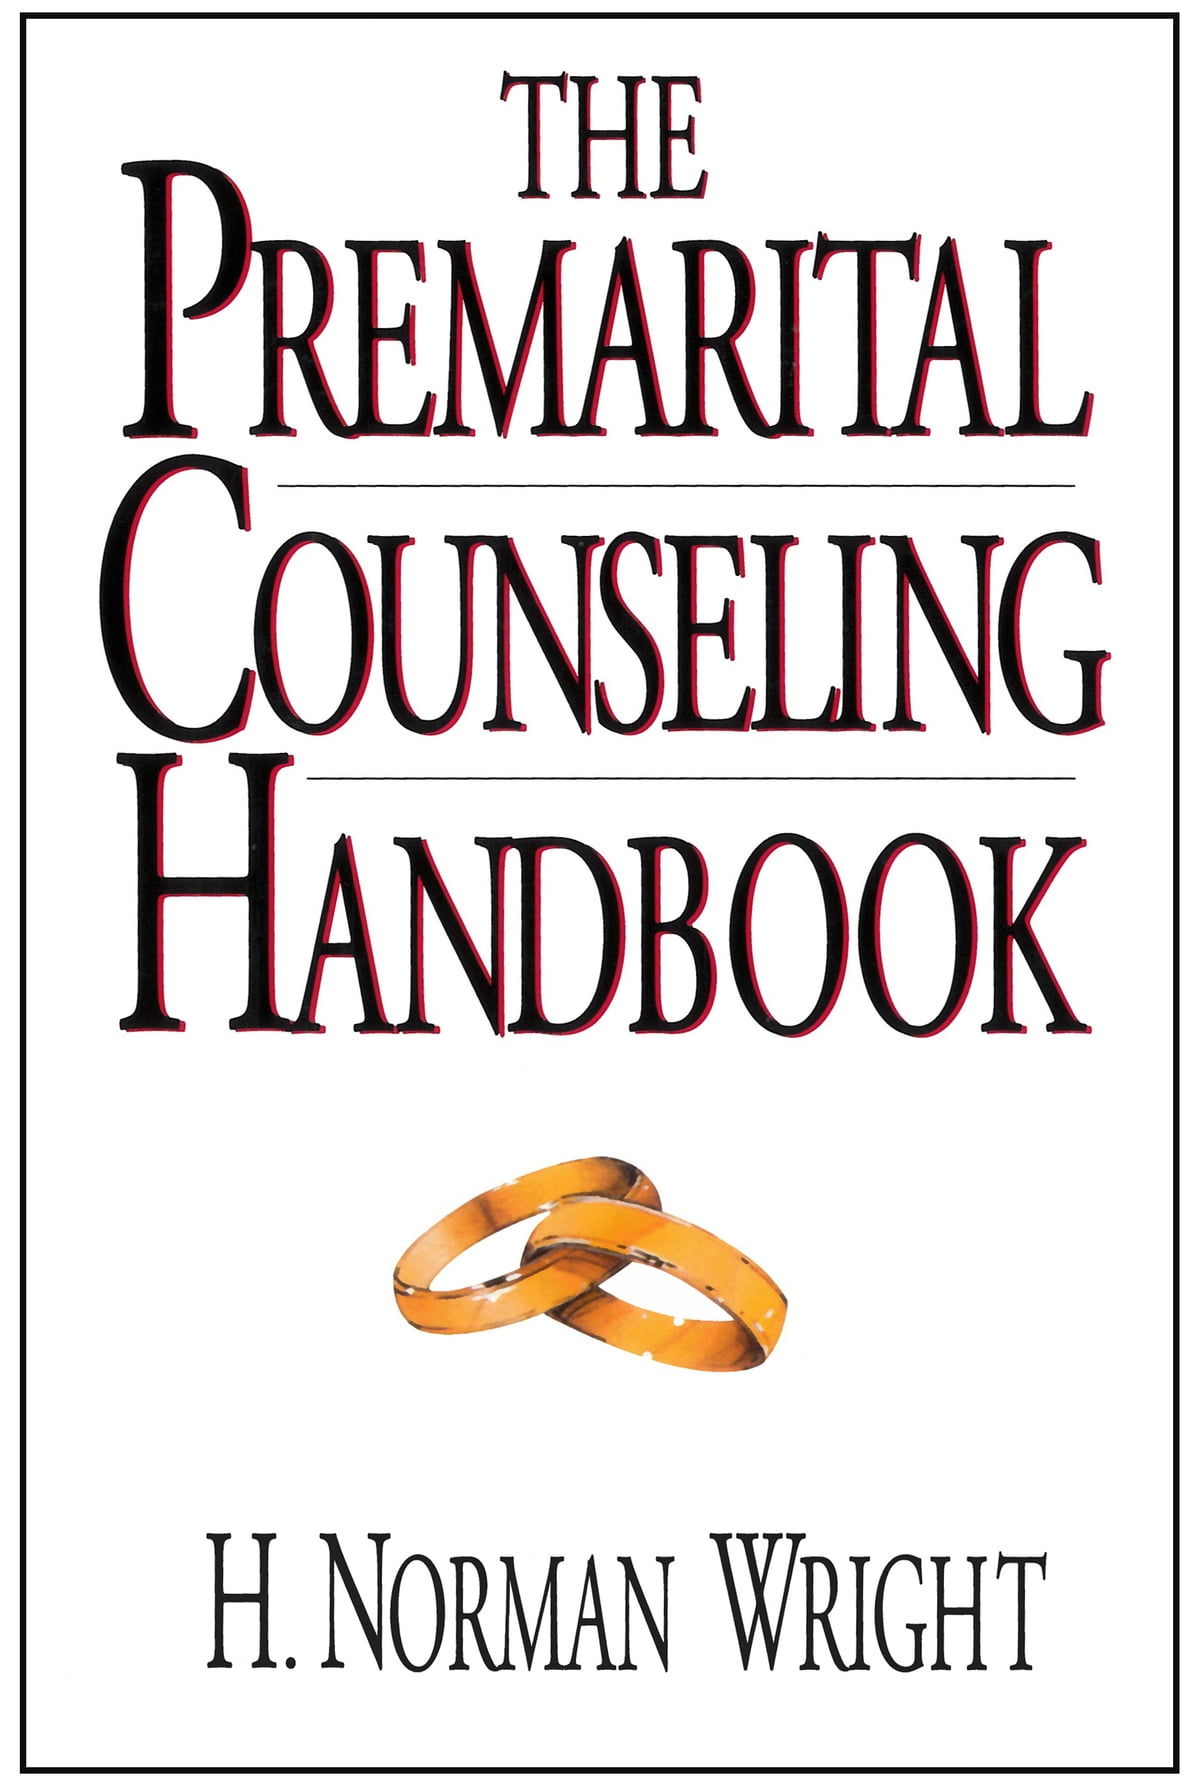 The Premarital Counseling Handbook eBook by H. Norman Wright ...